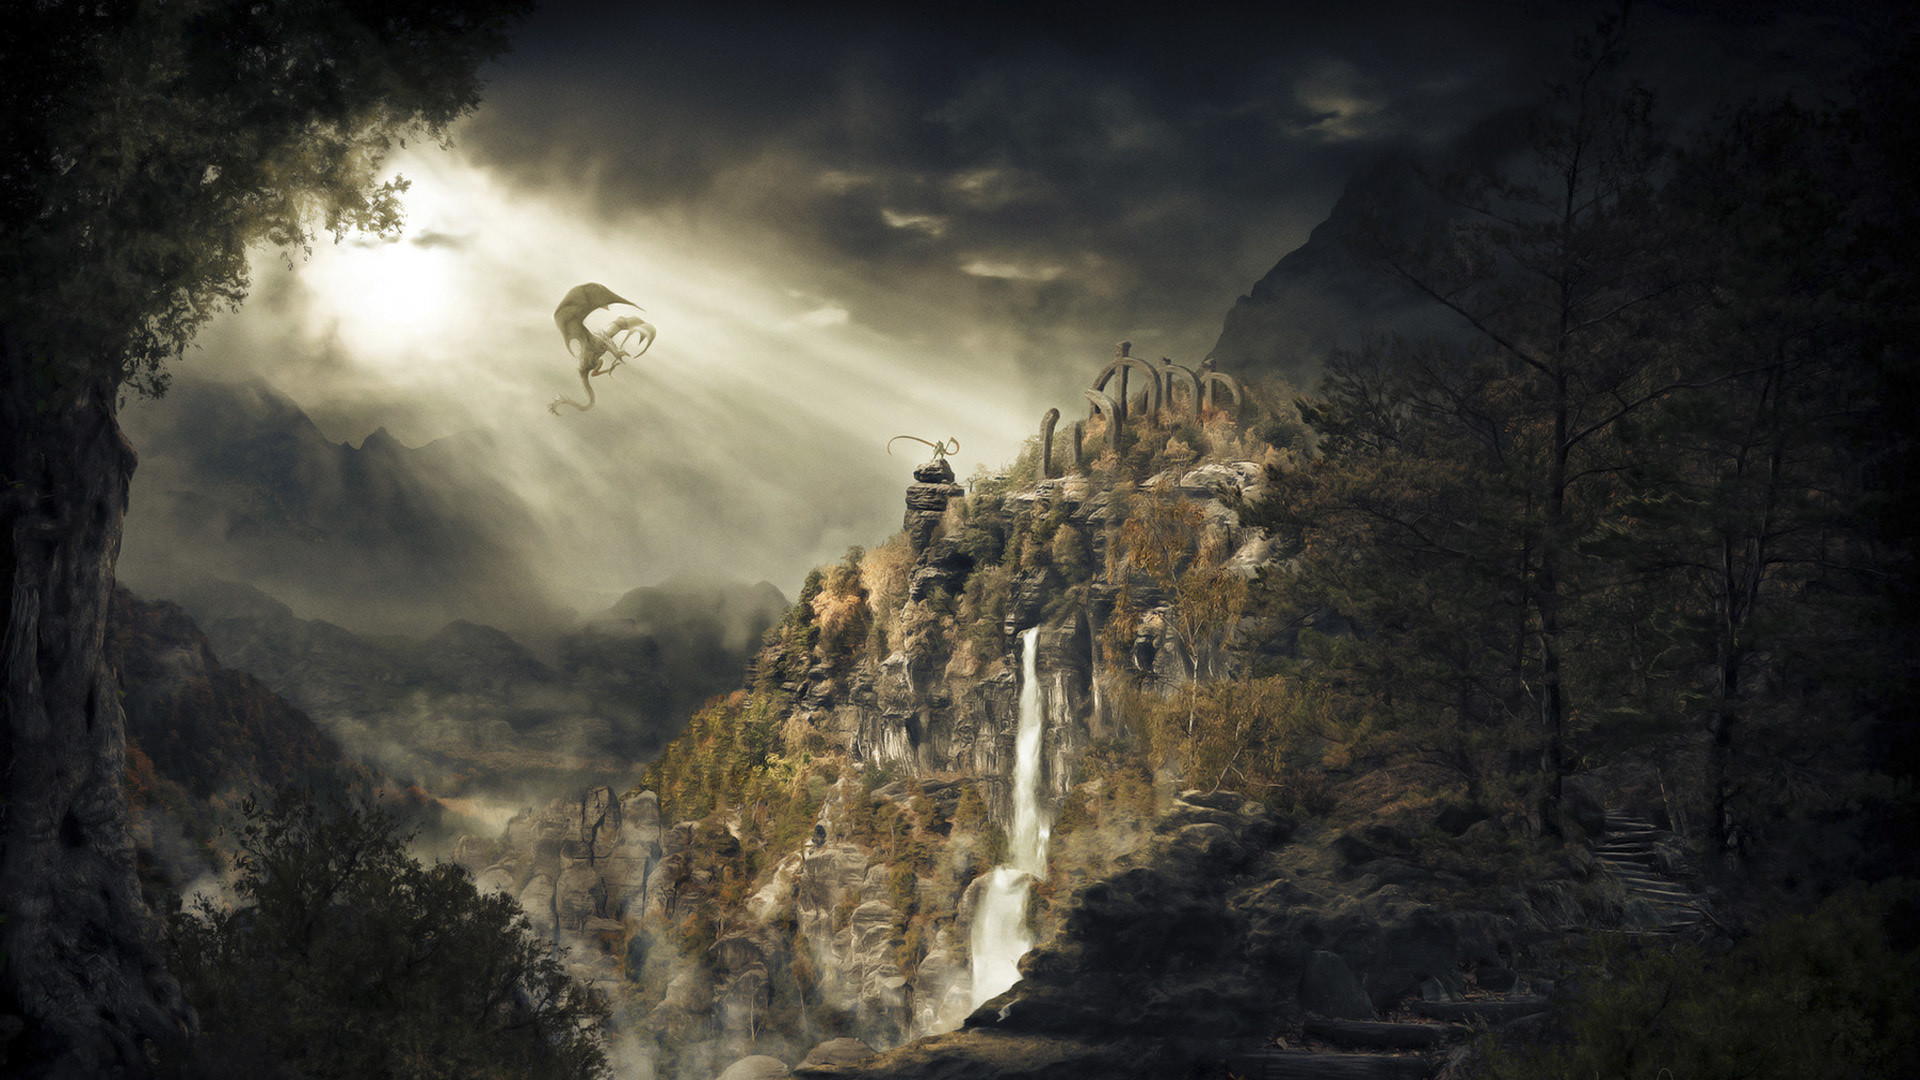 1080p HD Wallpapers for Mac Scenery on Fantasy.jpg (1920×1080)